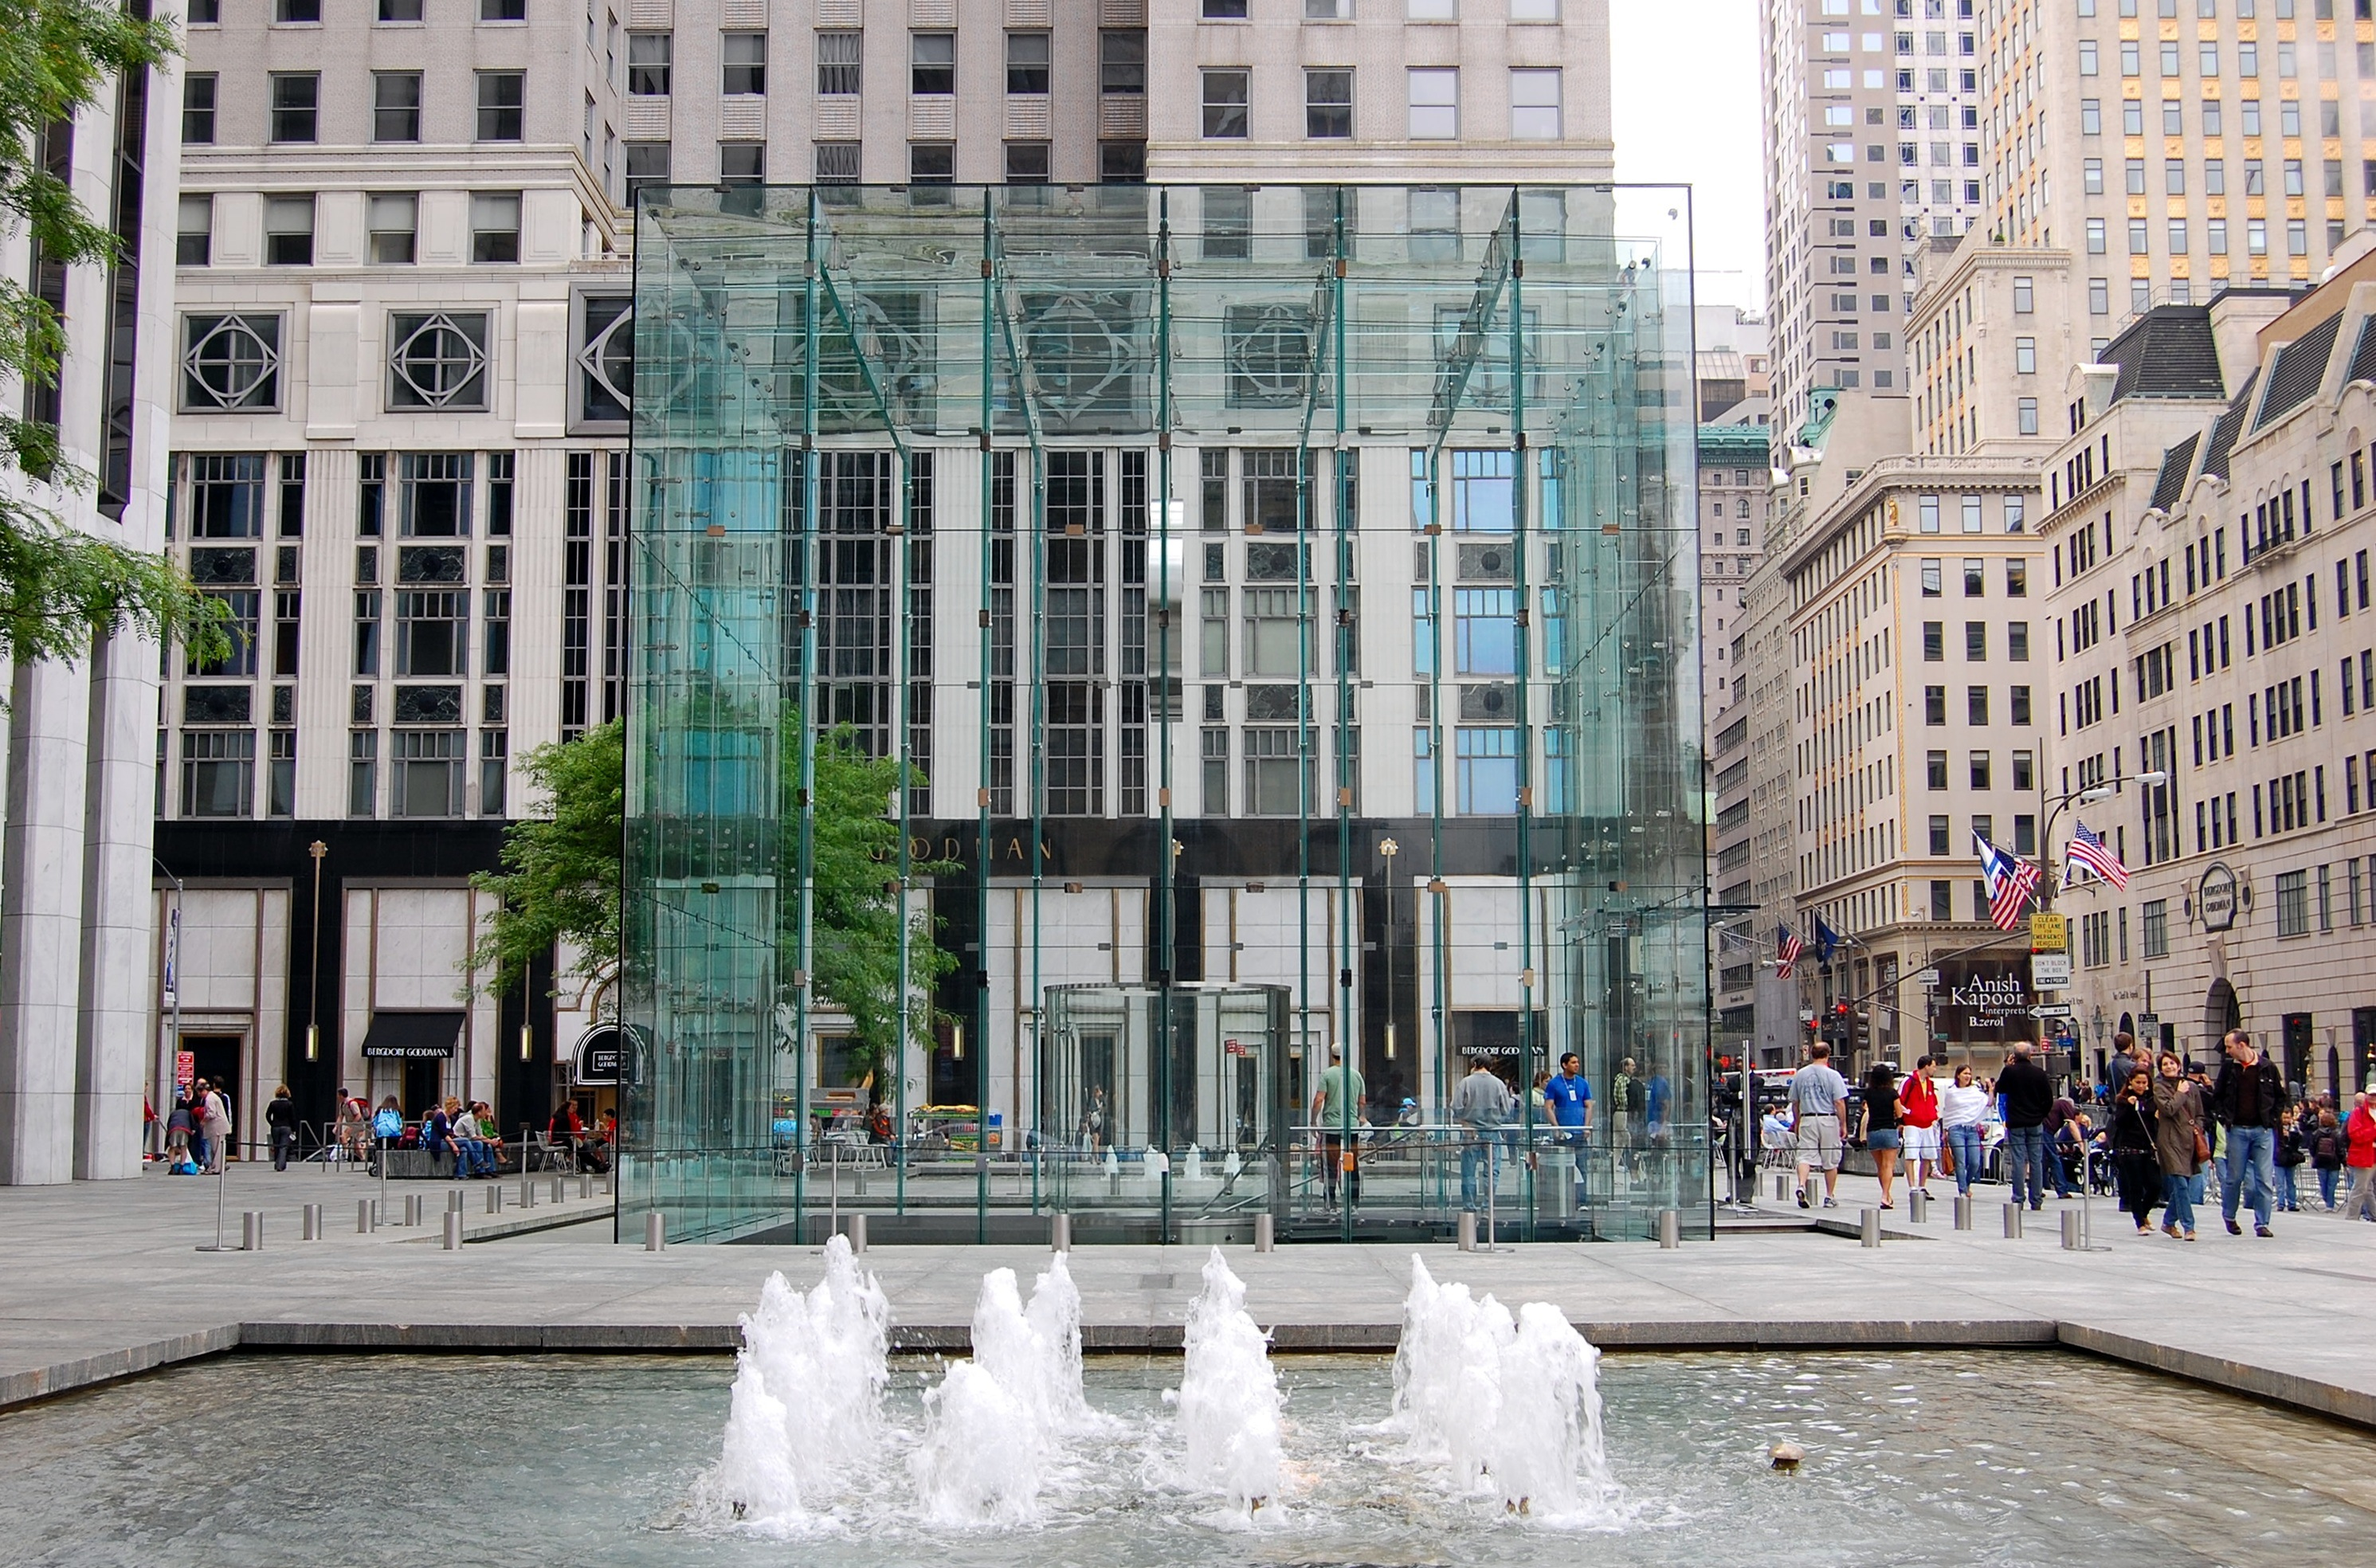 The Top 5 Excursions in New York City